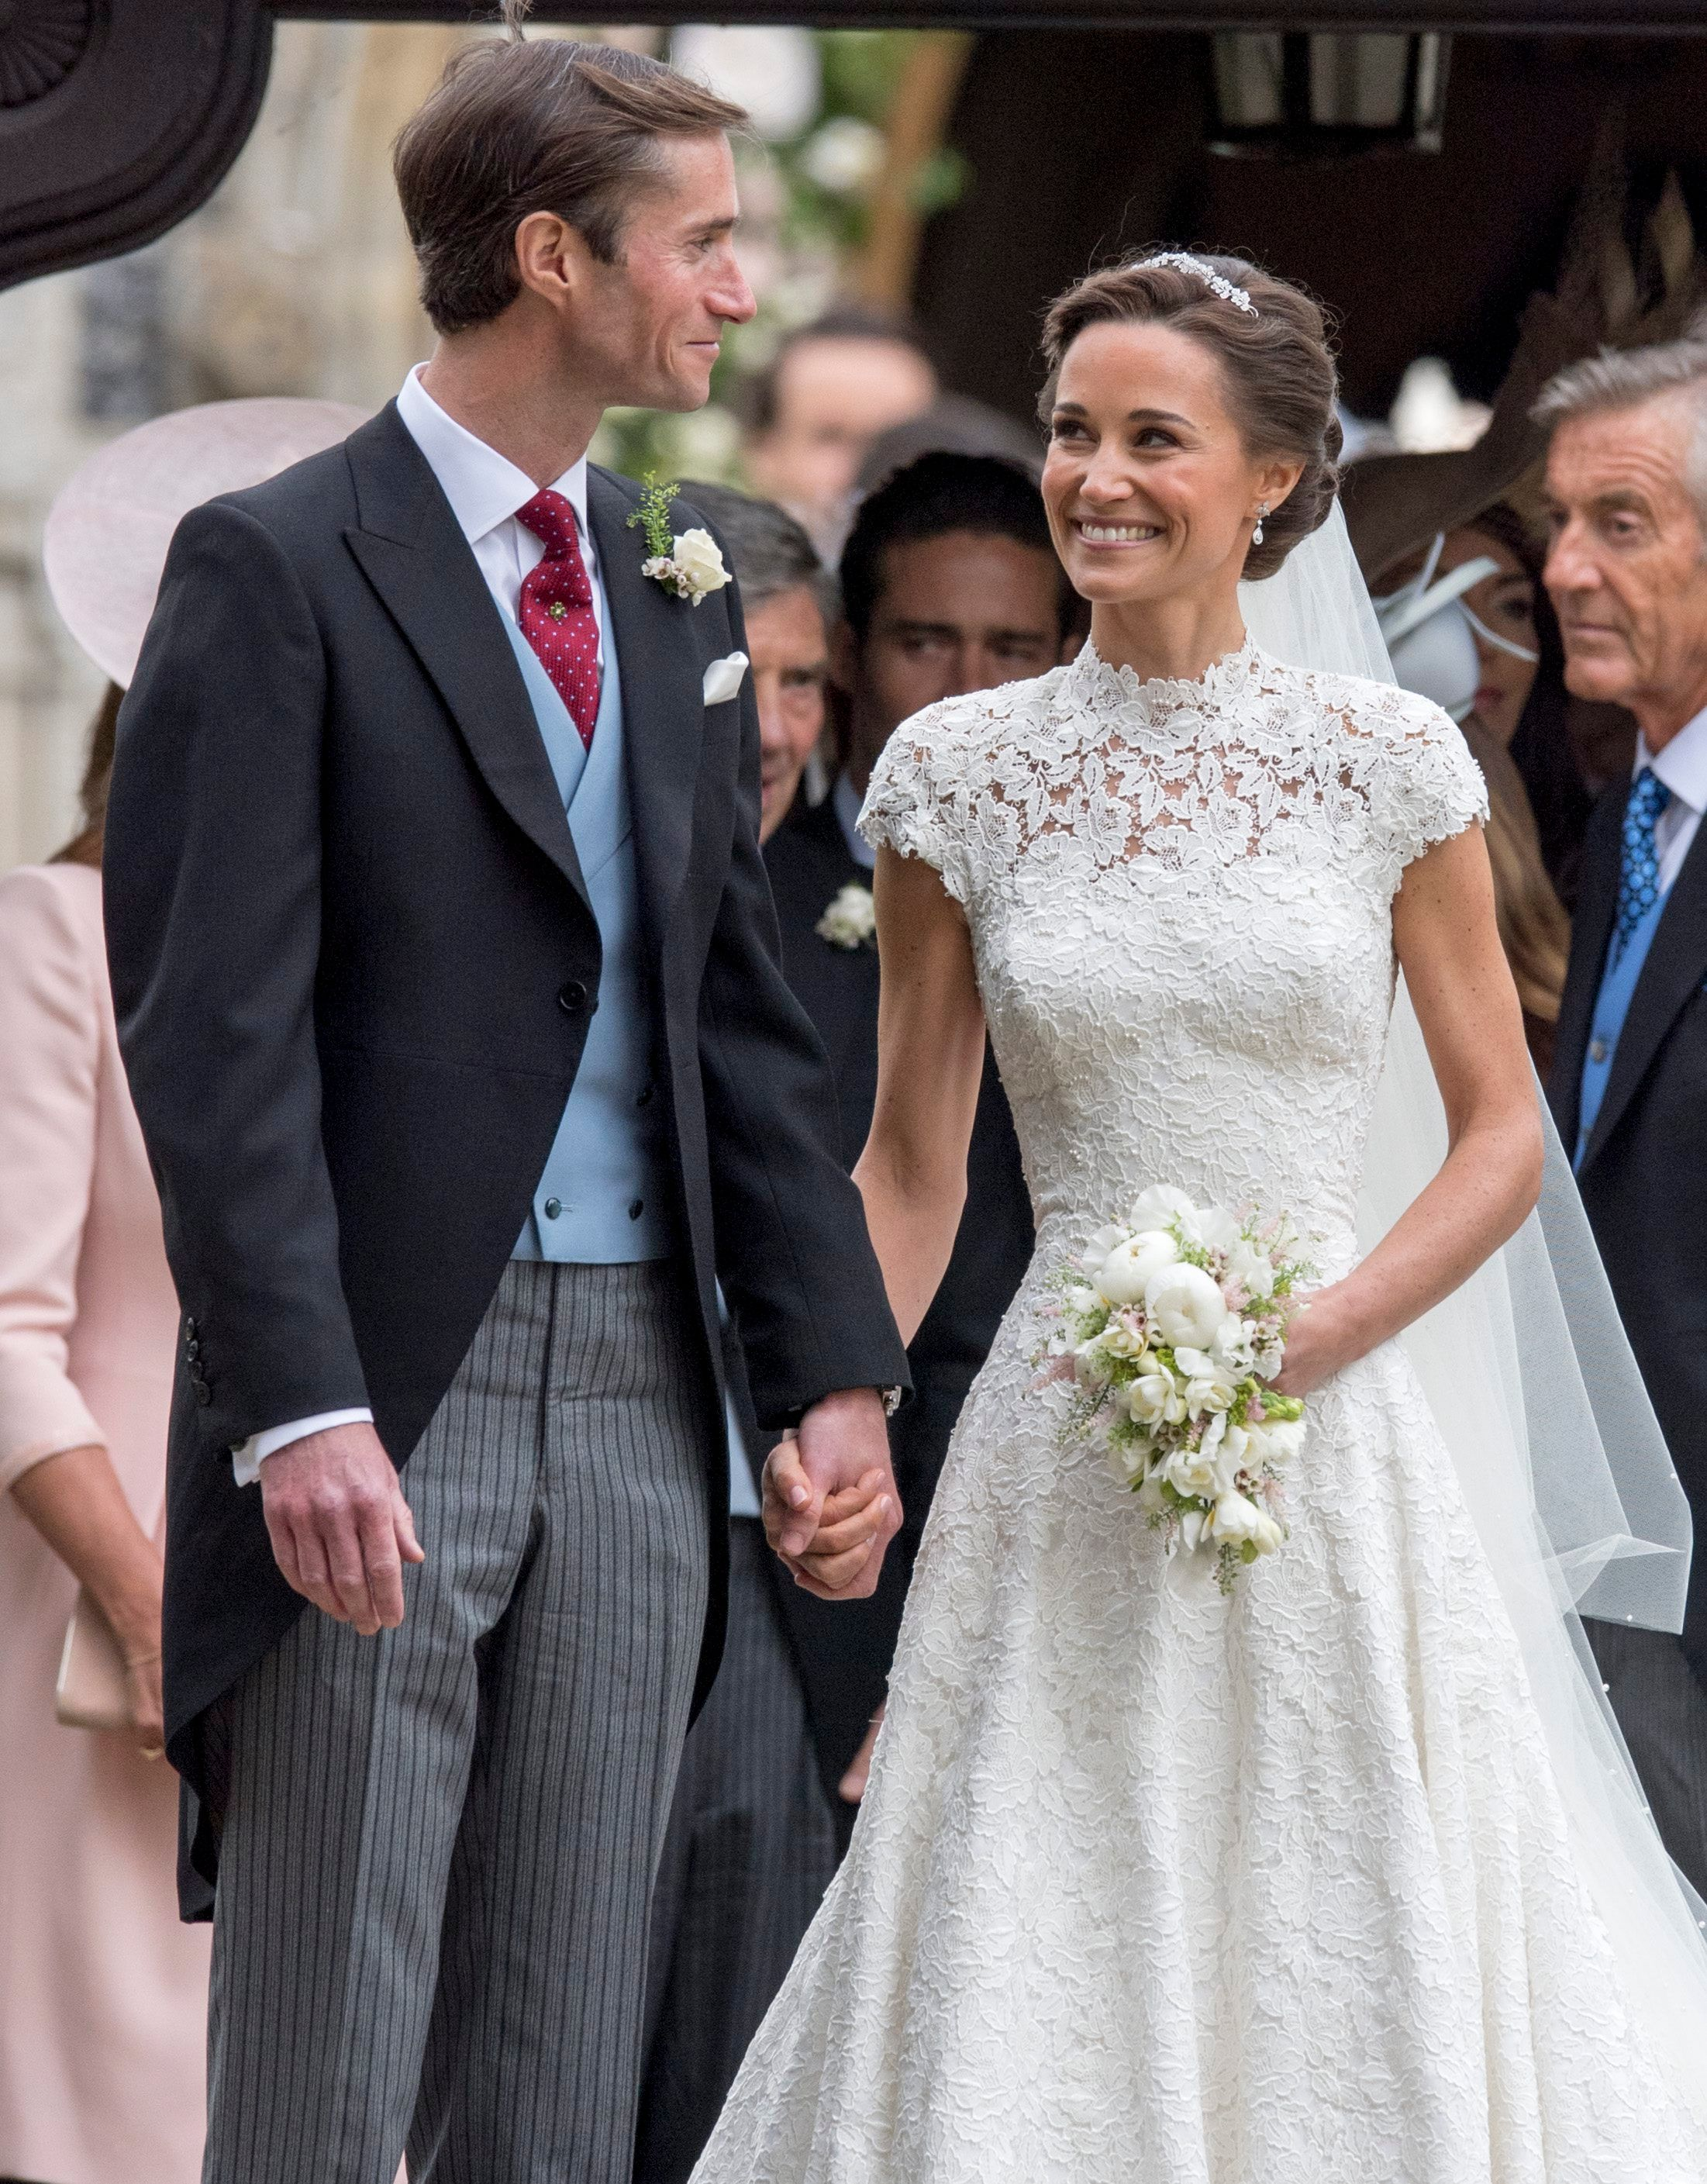 Hidden Details On Pippa Middleton's Wedding Dress You Didn't Know About - Fame10